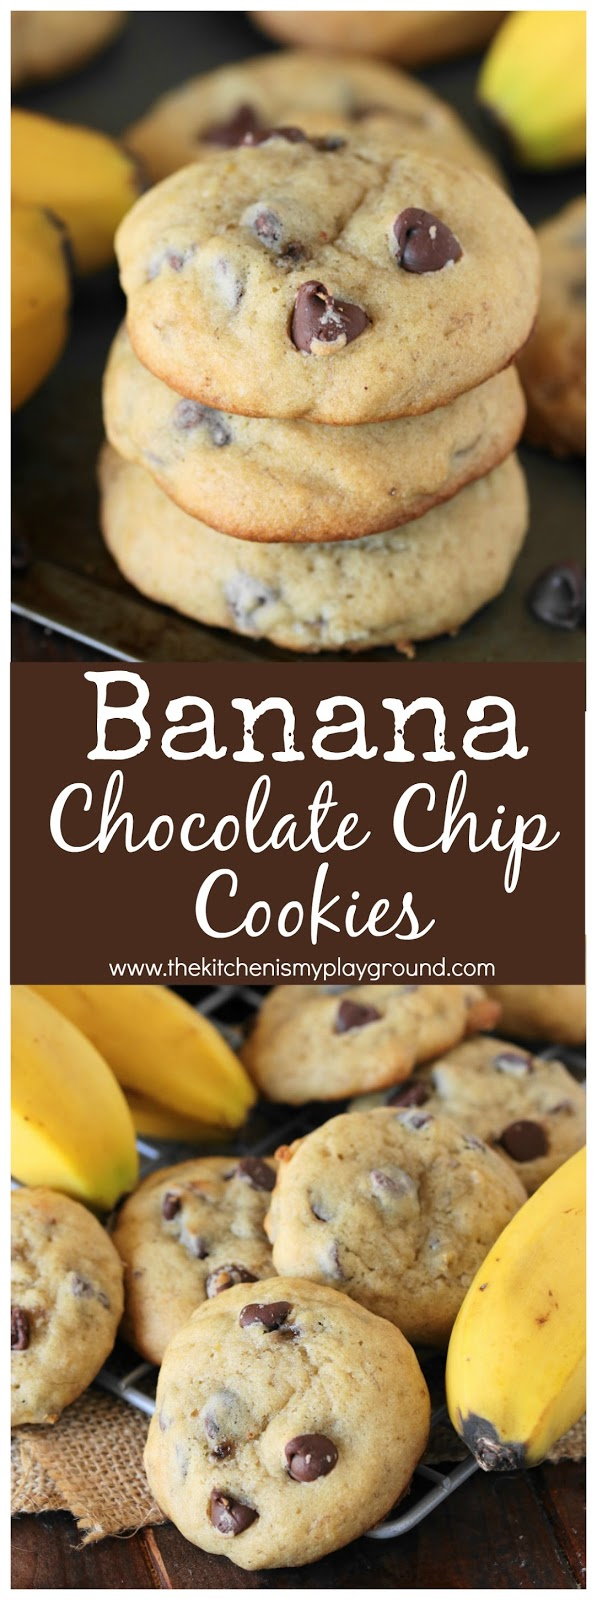 Banana Chocolate Chip Cookies The Kitchen Is My Playground Choco Chips Pin Image